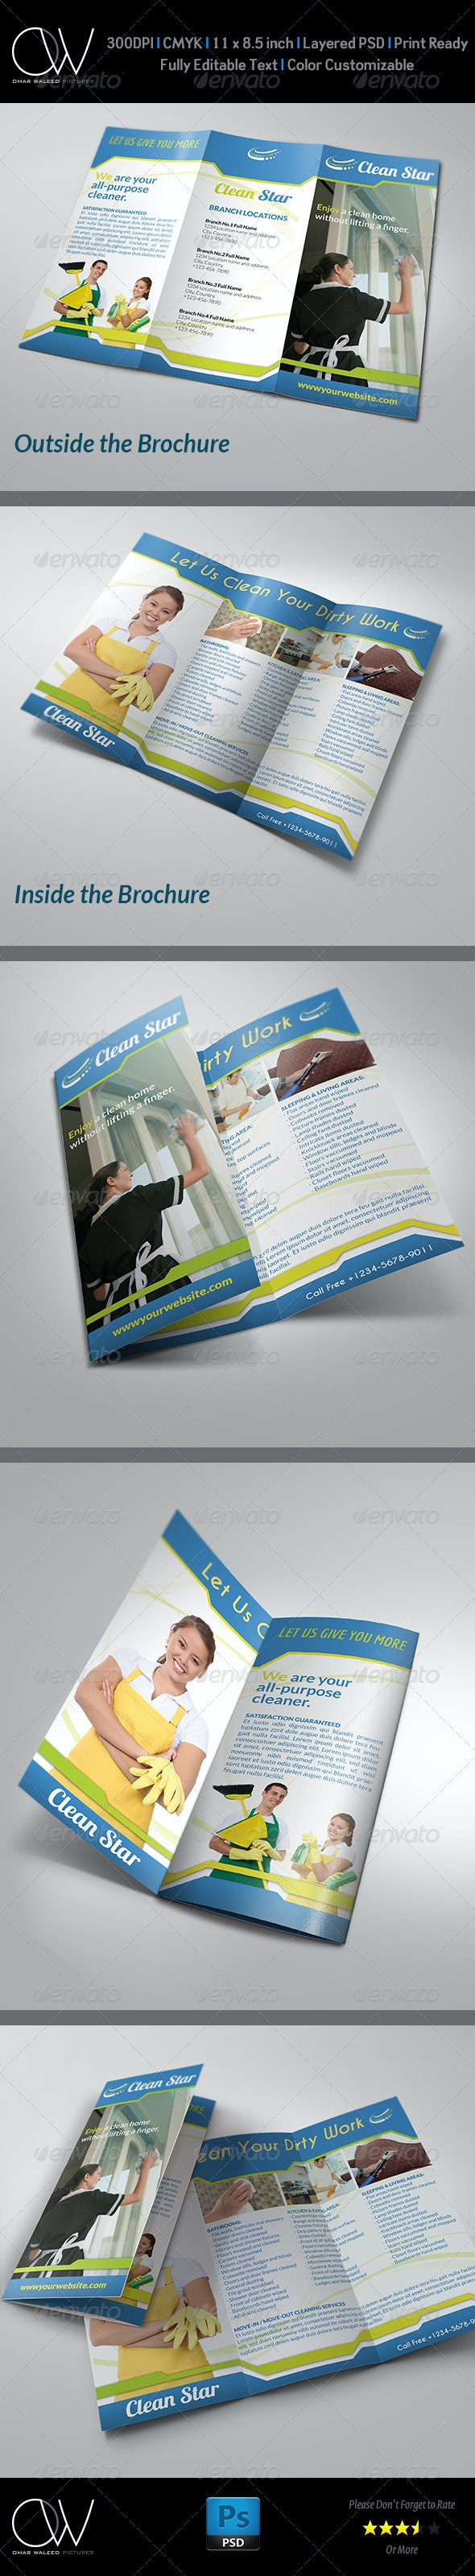 Cleaning Services Tri-Fold Brochure - Brochures Print Templates